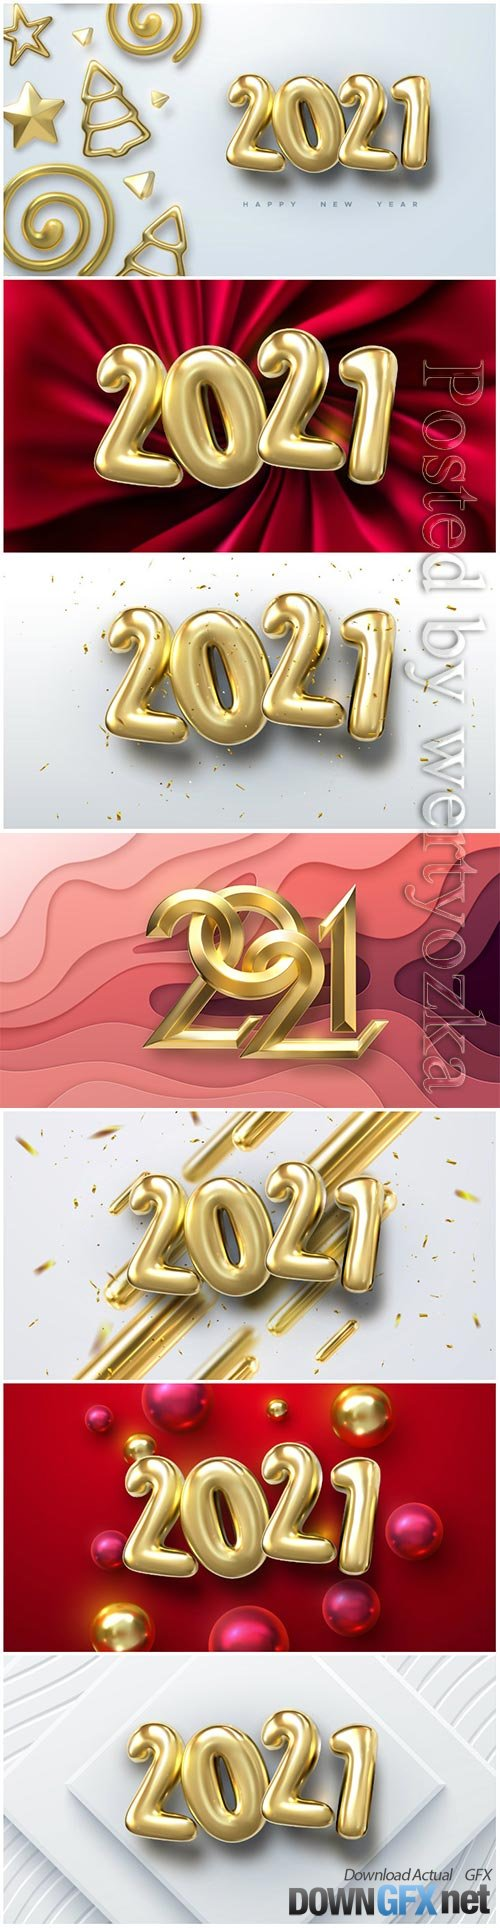 Numbers 2021 for new year vector illustration